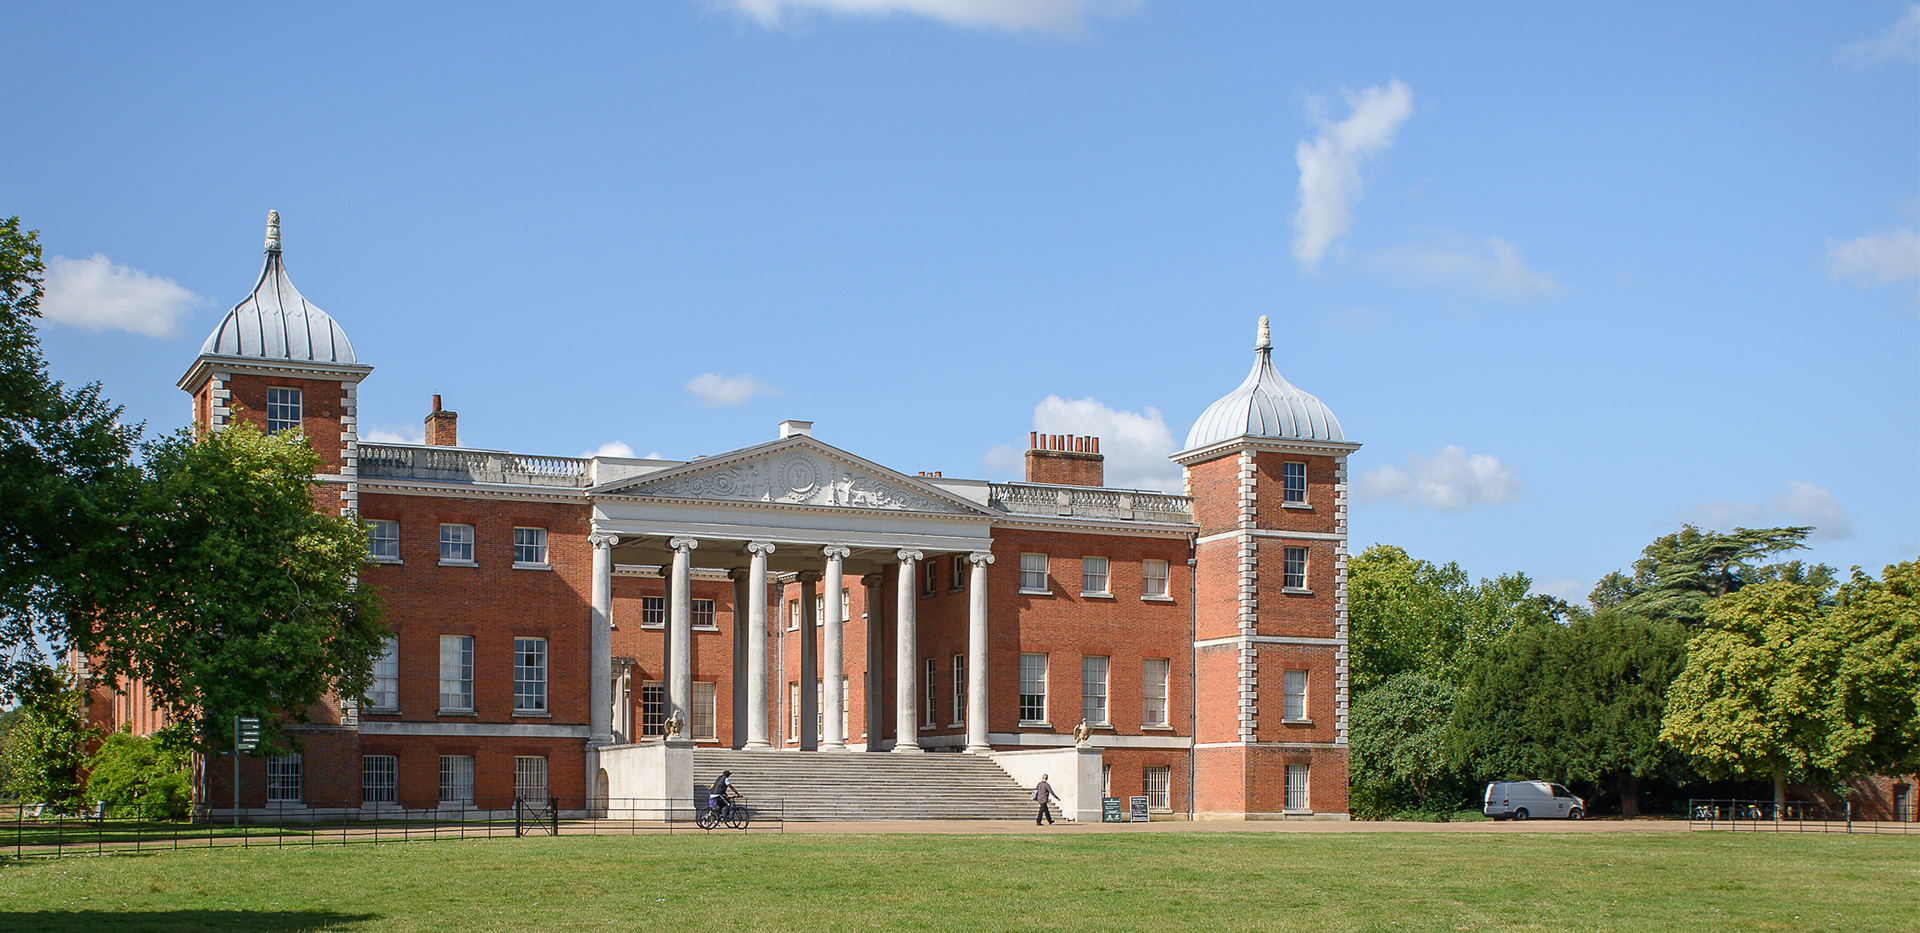 St James, Fitzroy Gate,Osterley Park